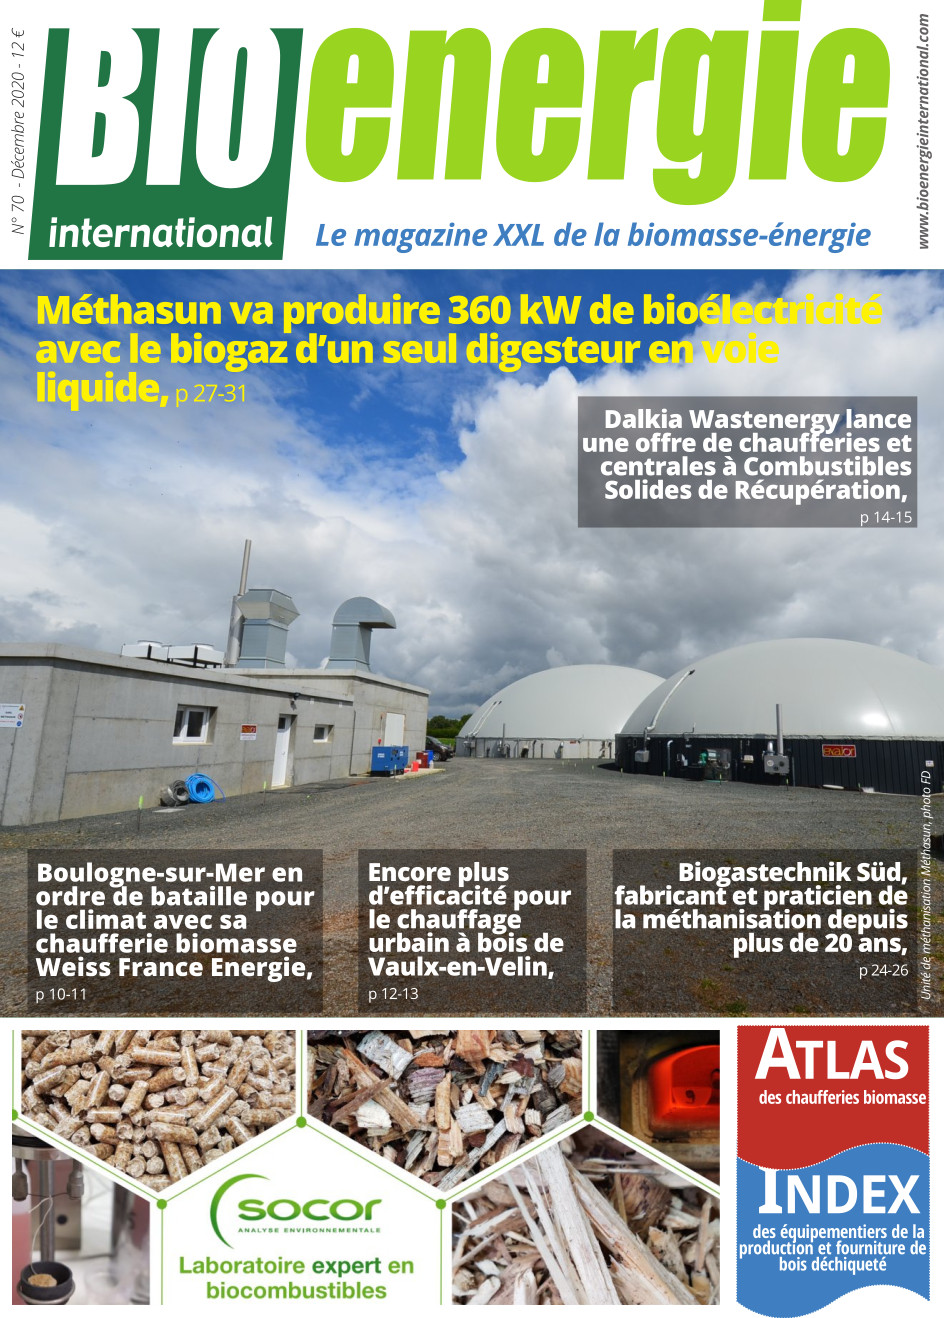 Bioénergie International n°70 – décembre 2020